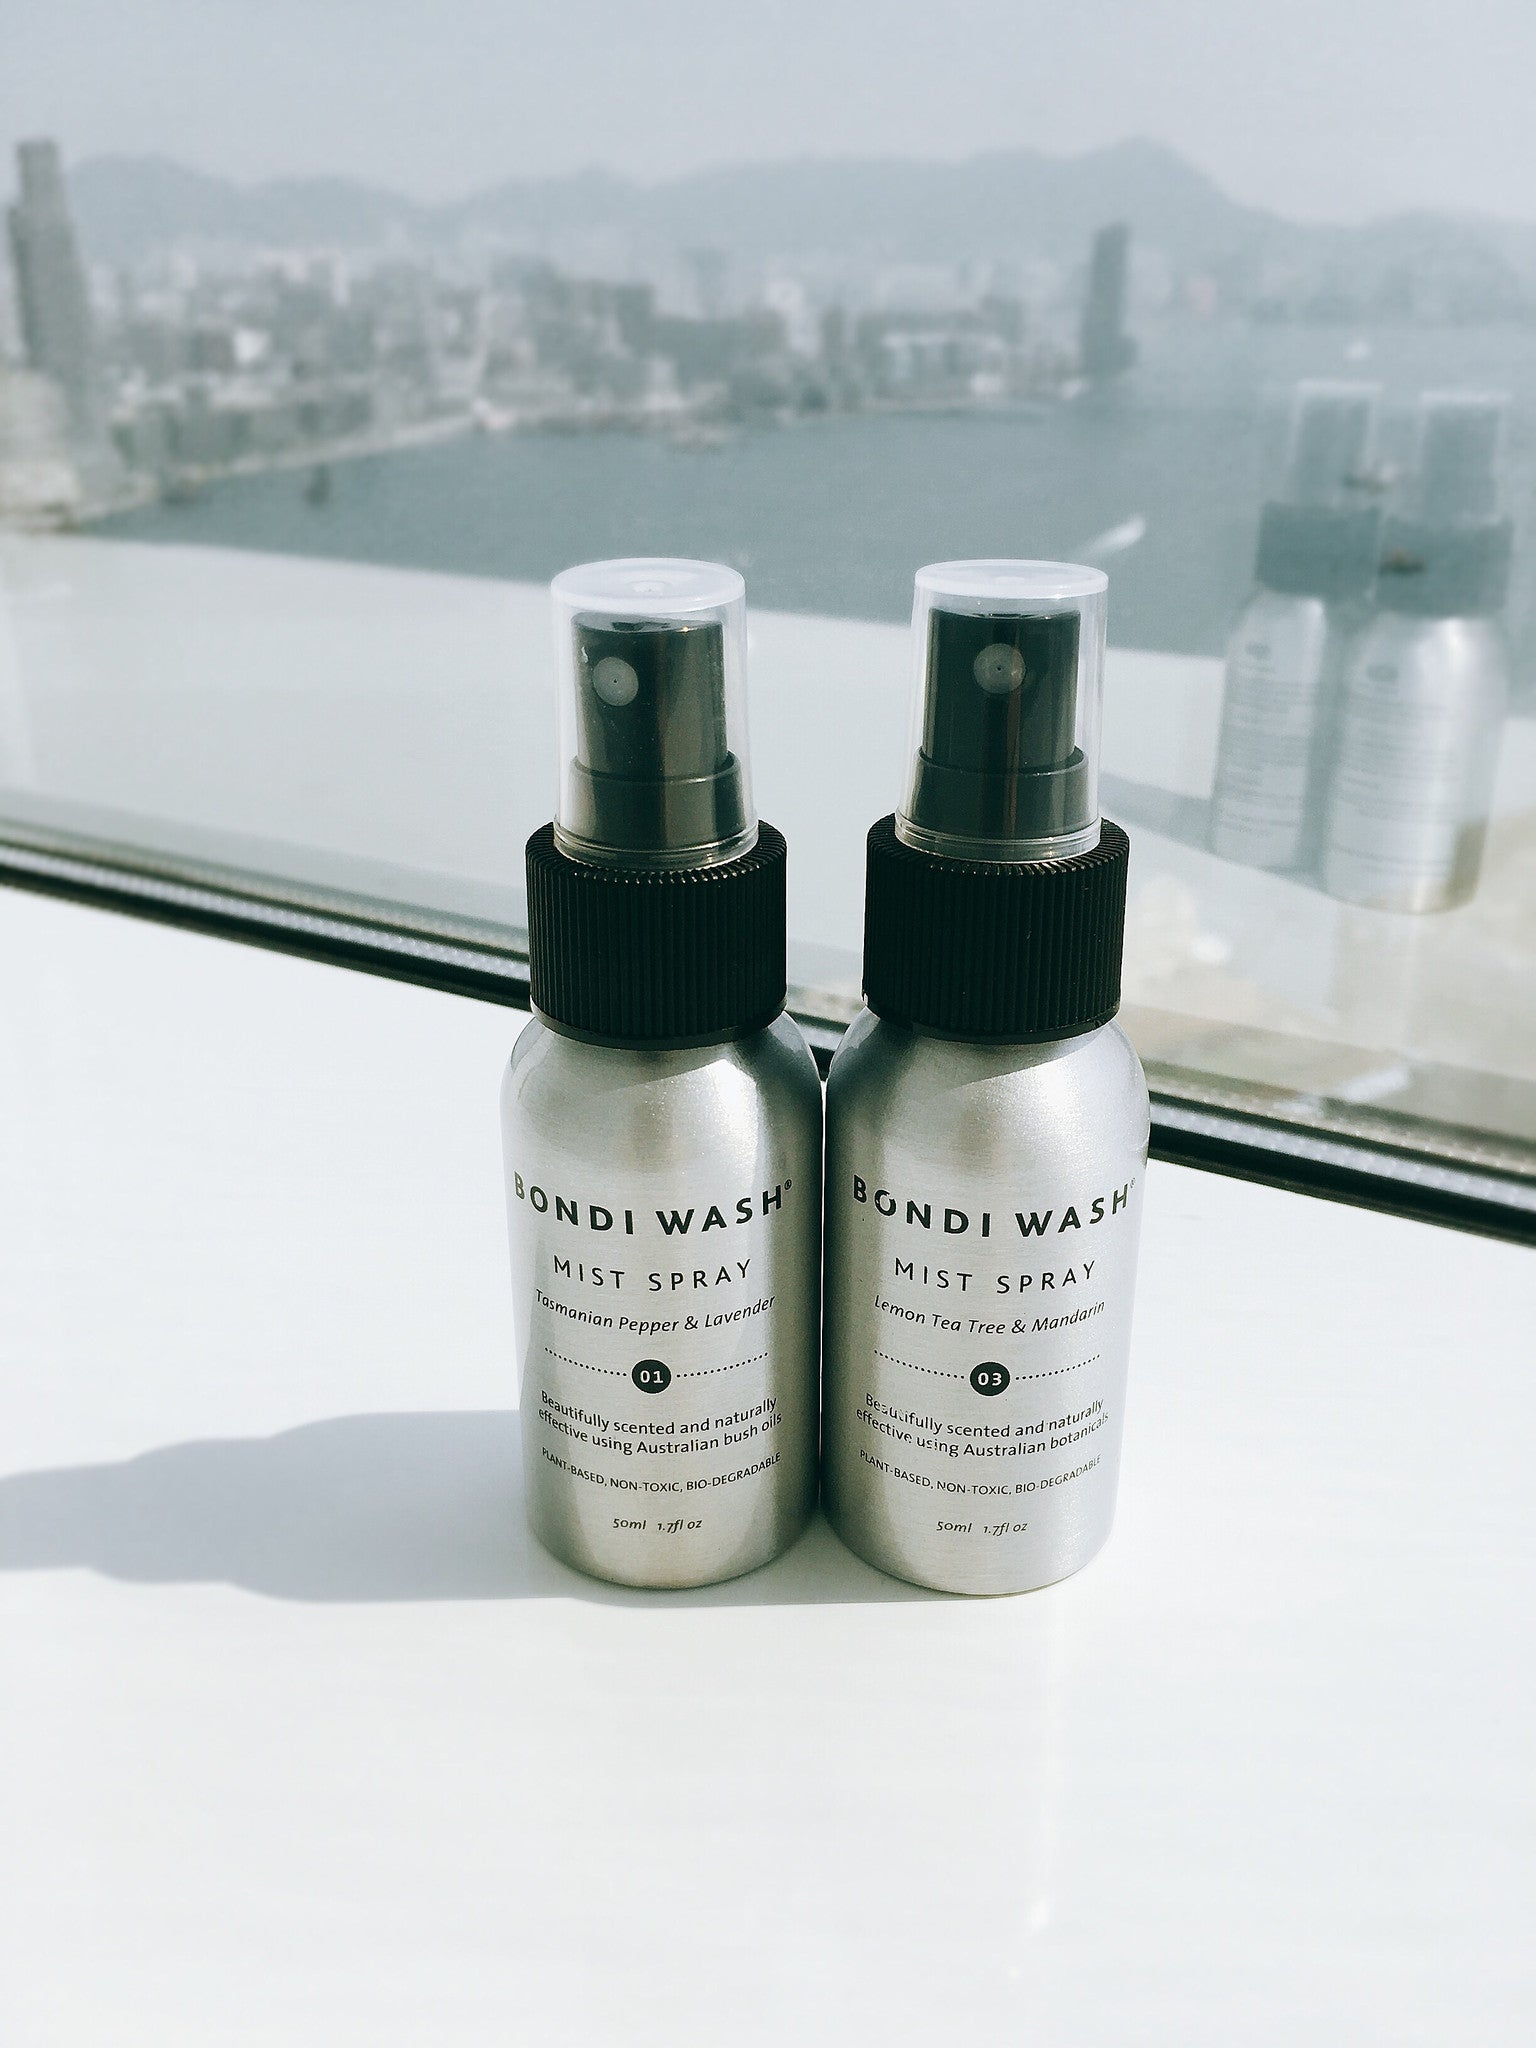 Bondi Wash - Mini Mist Spray Fragonia & Sandalwood 50ml 芳枸葉檀香室內噴霧